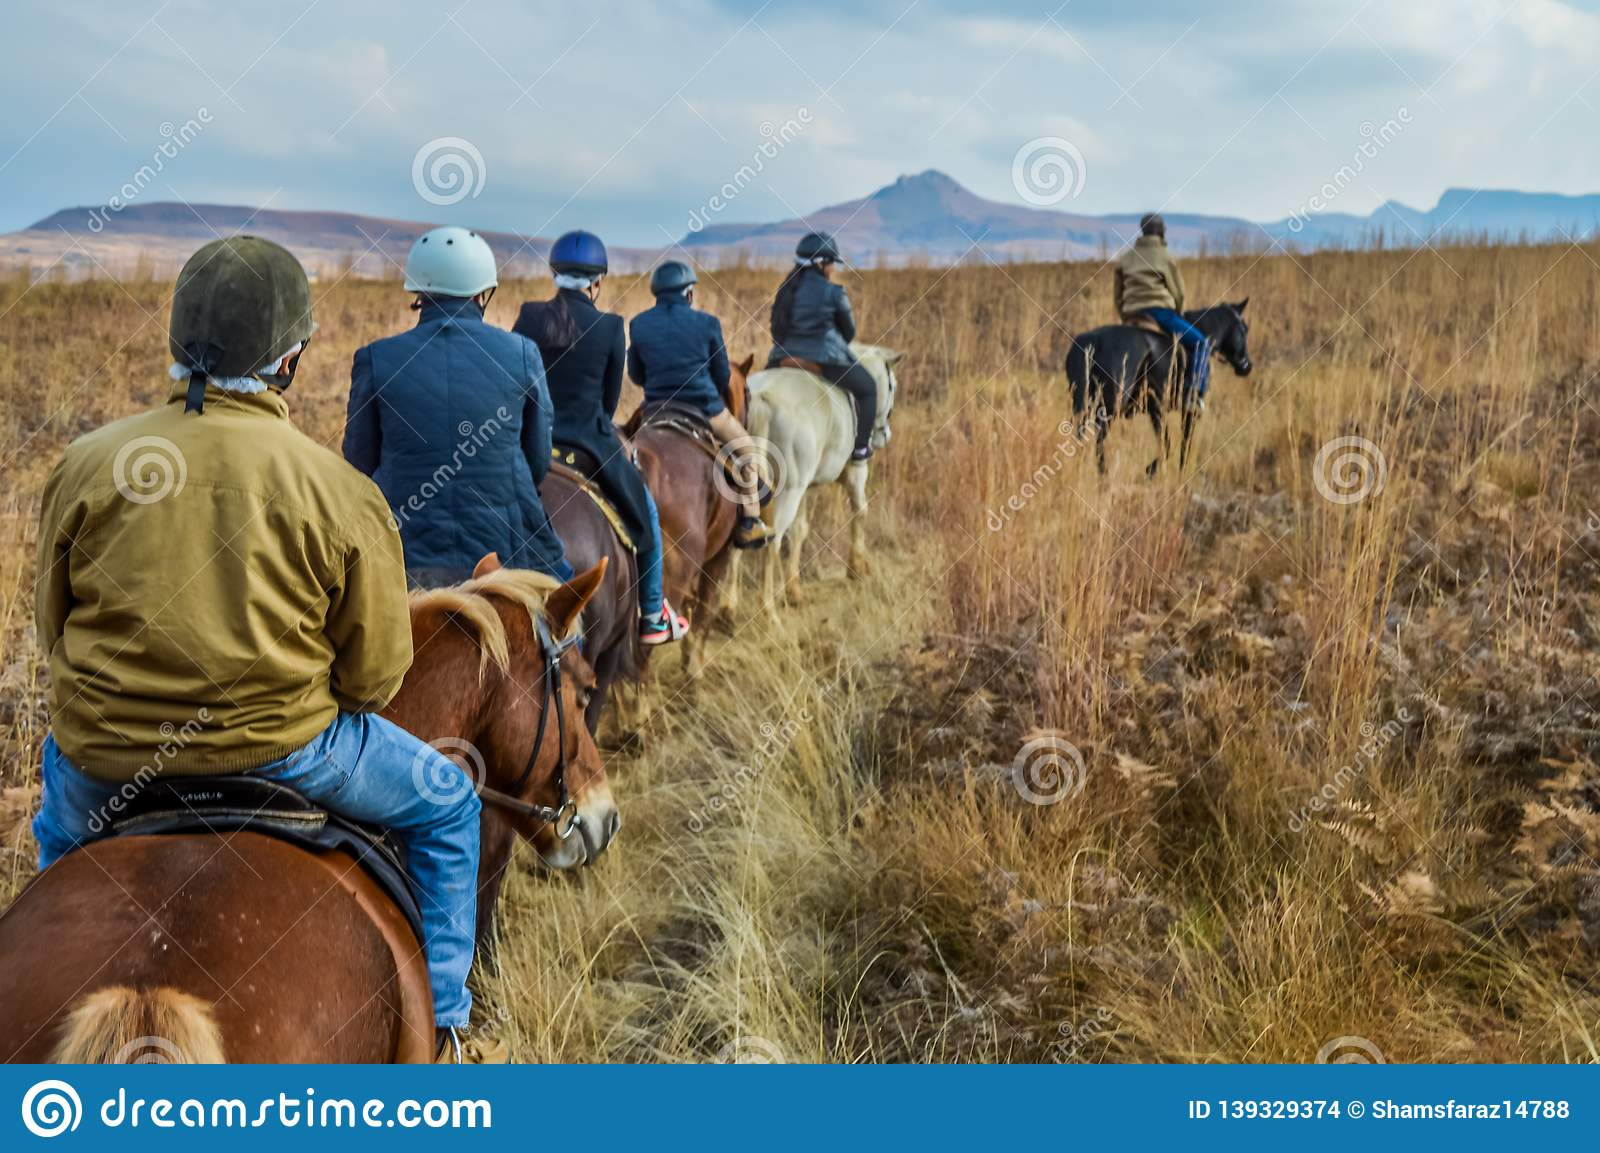 Group Of Indian Horse Riding Riders On A Trail In Drakensberg Re Stock Photo Image Of Adventure Horse 139329374